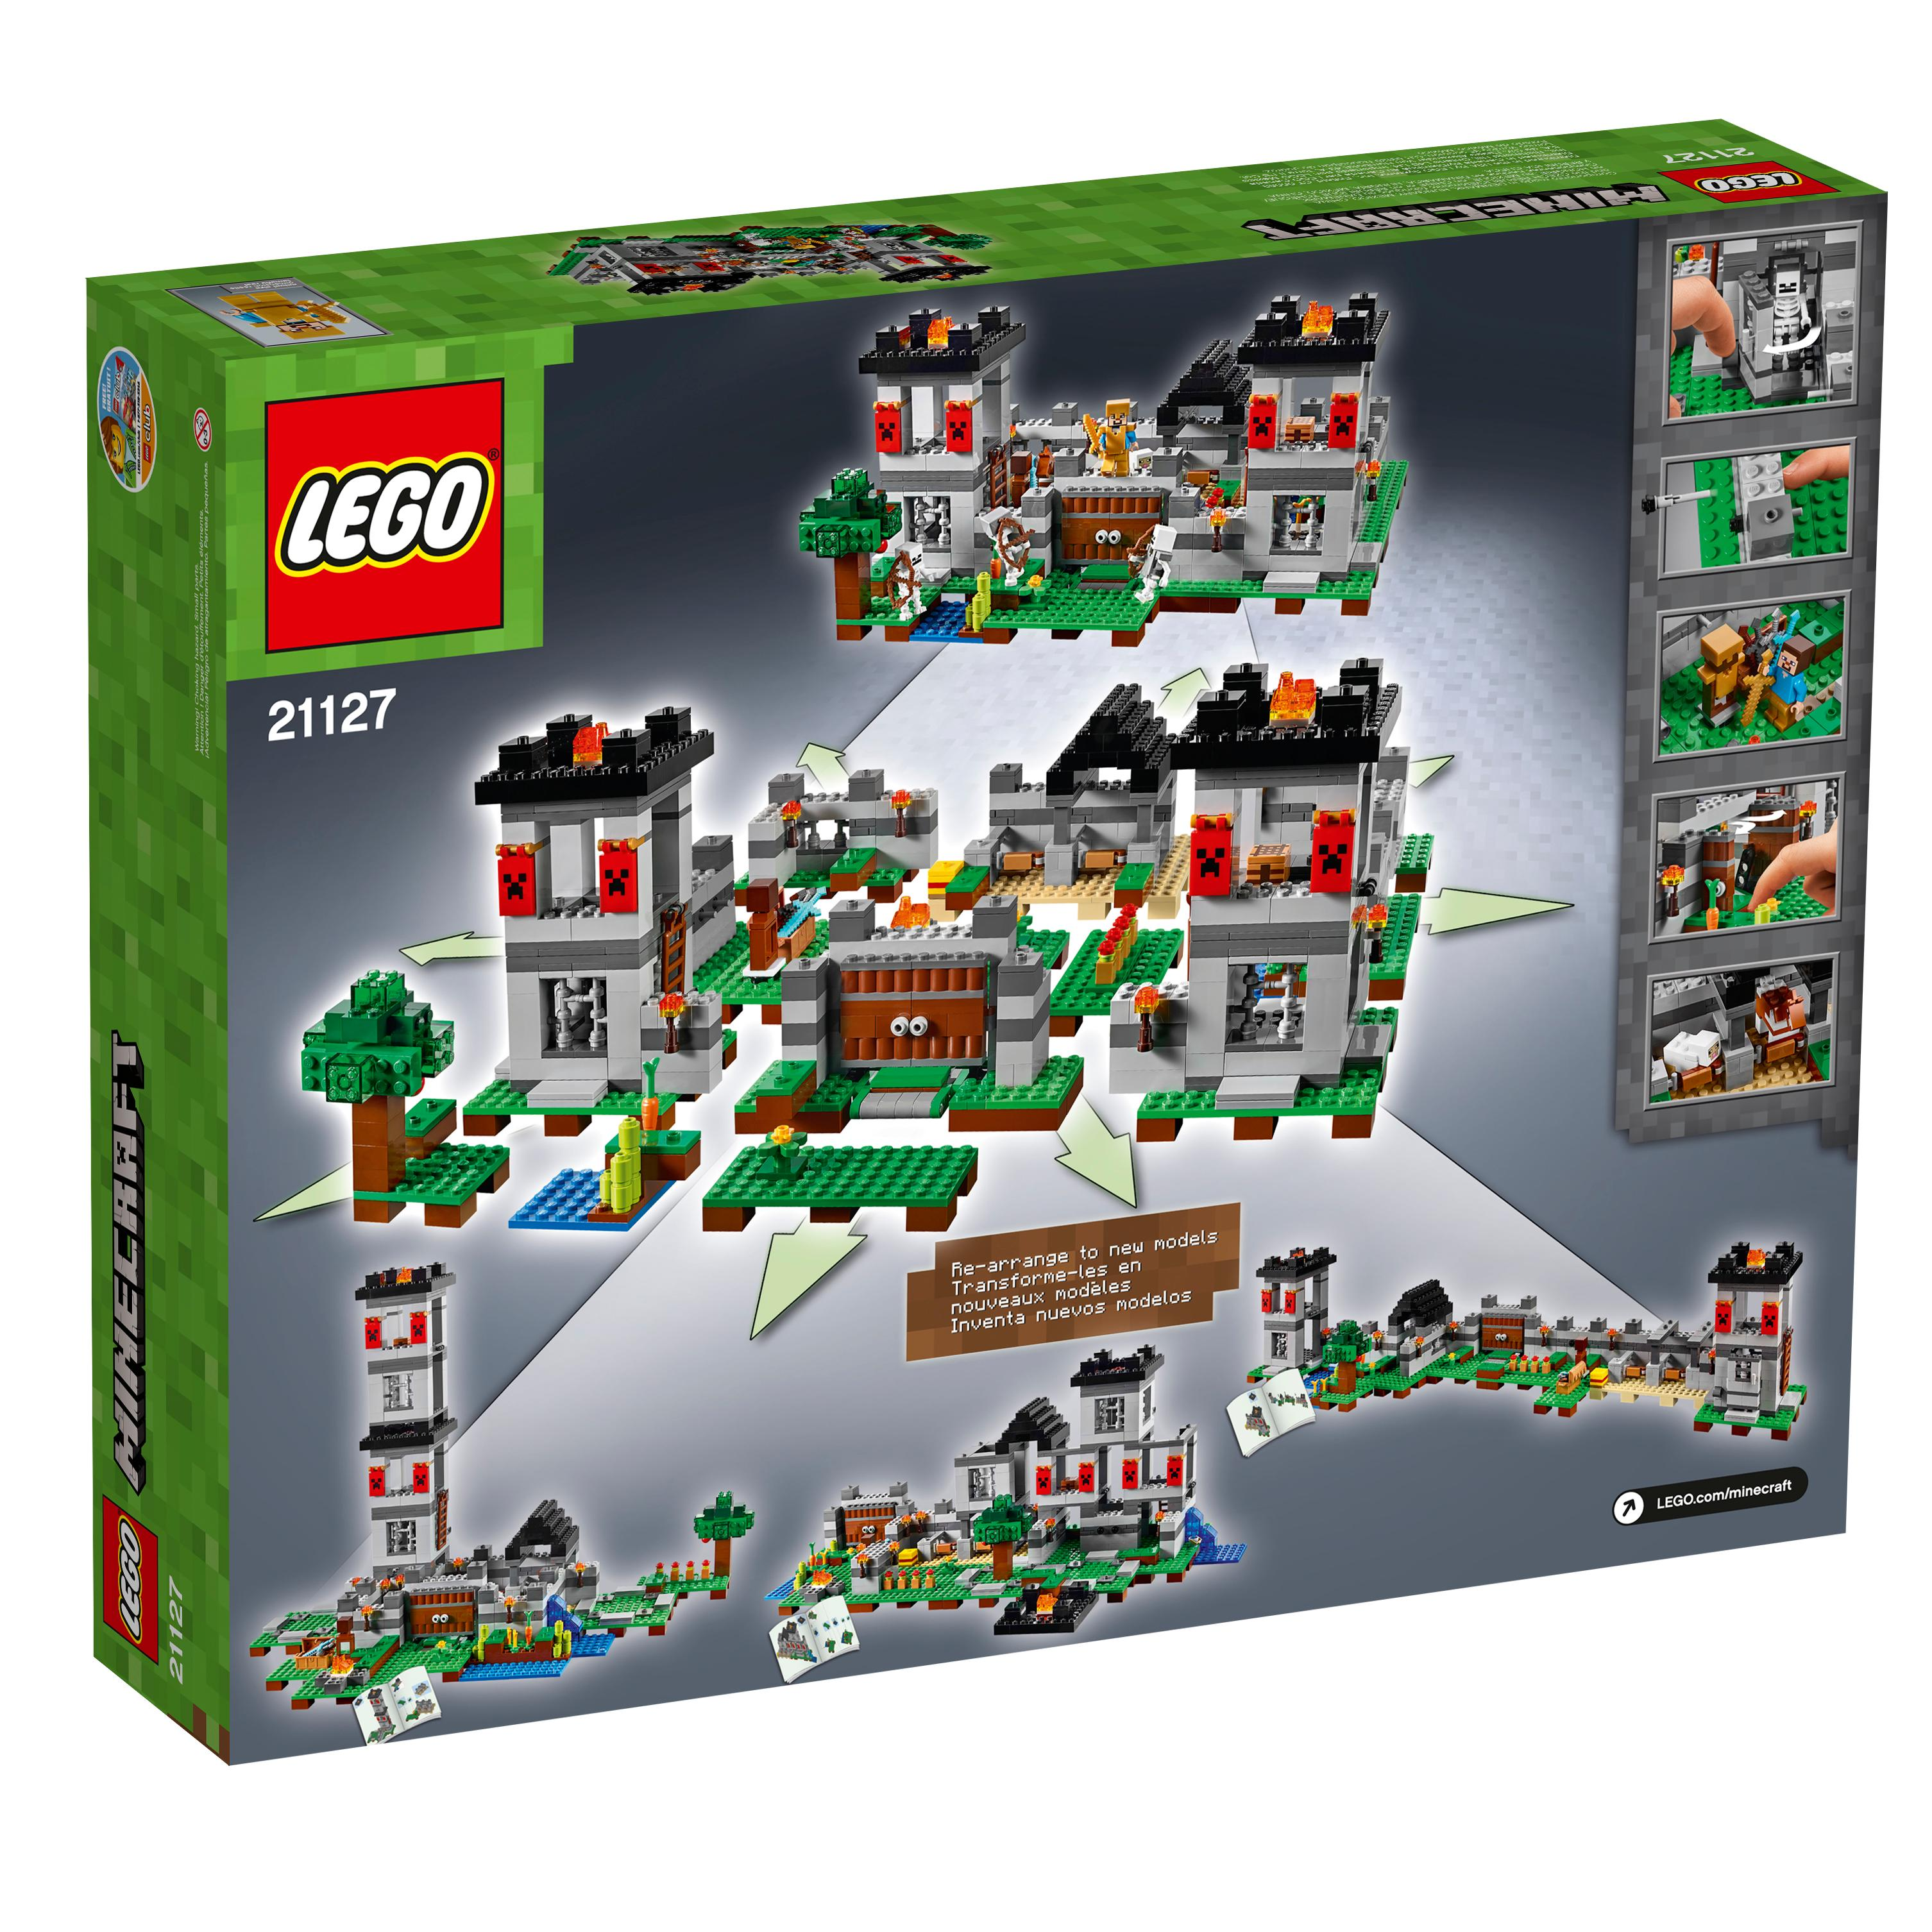 Amazon: Amazon.com: LEGO Minecraft The Fortress 21127: Toys & Games